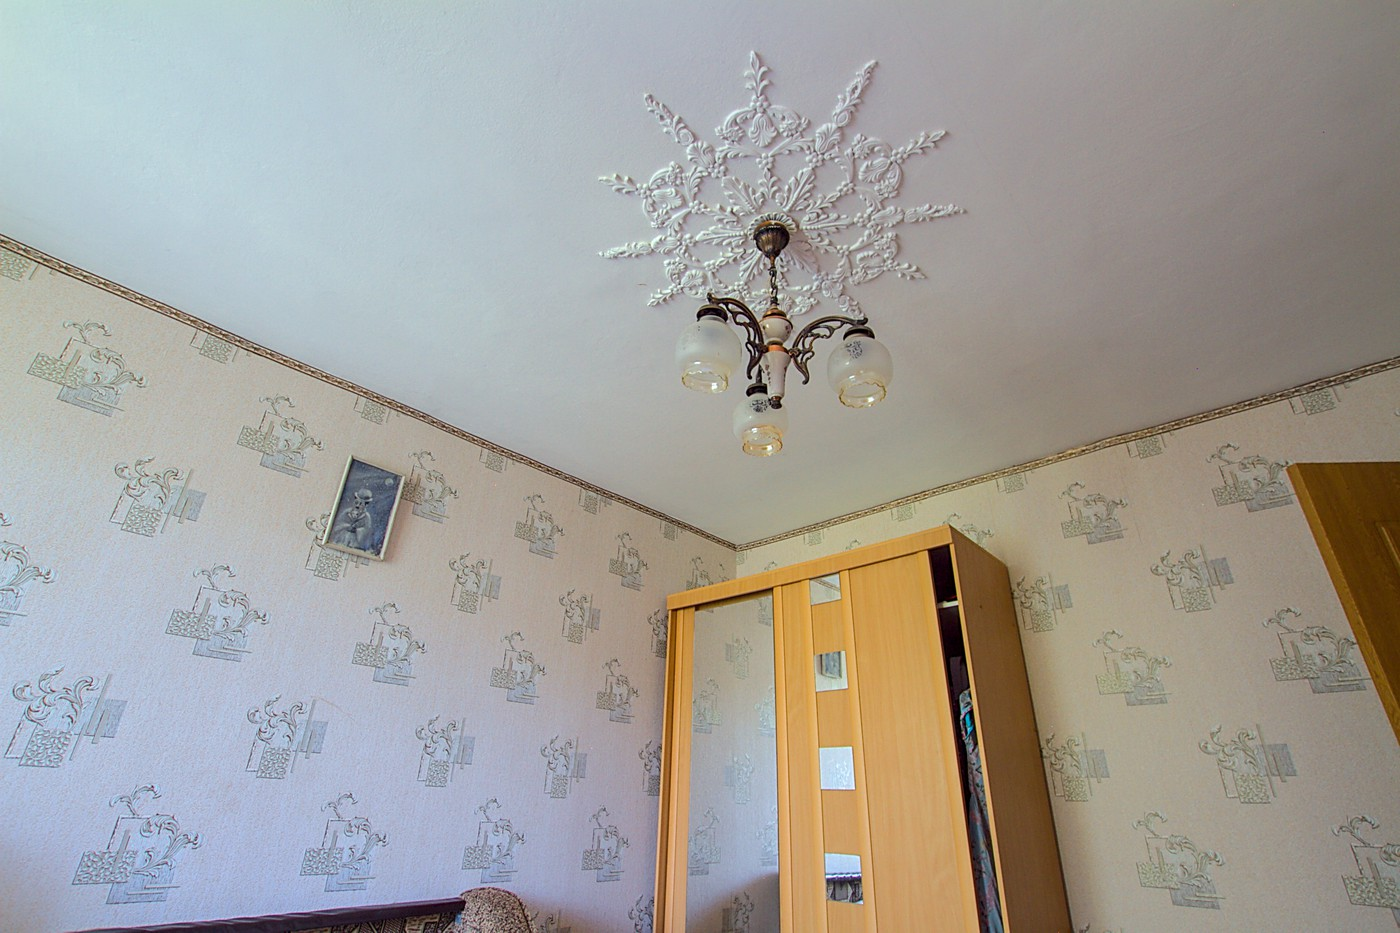 Cheap_rent_apartmet_Chisinau_Riscani_3.jpg